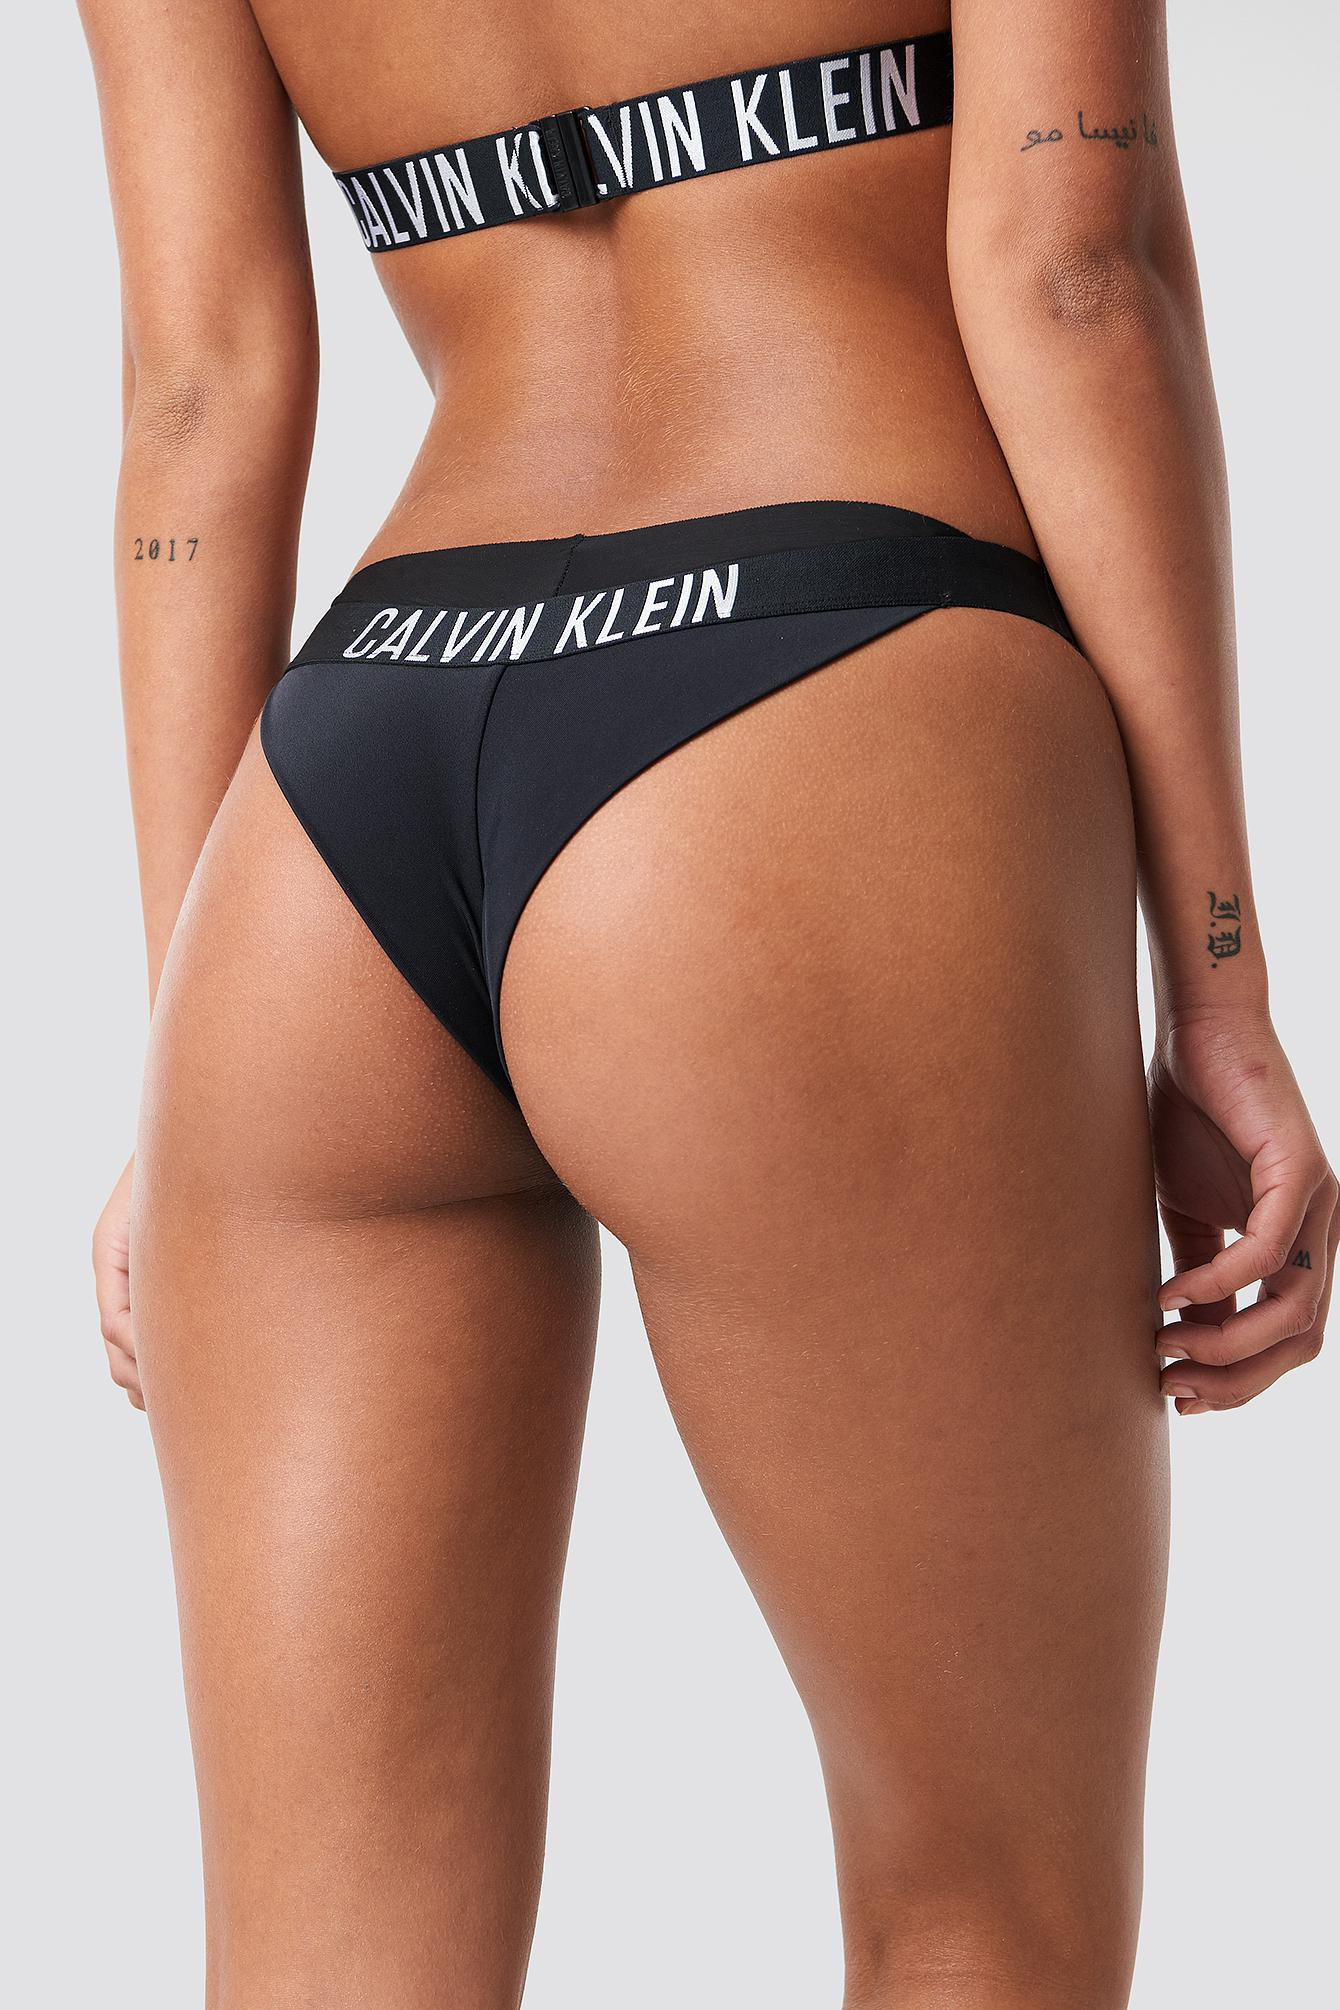 bad1320700 Lyst - Calvin Klein Brazilian Bikini Bottom Pvh Black in Black